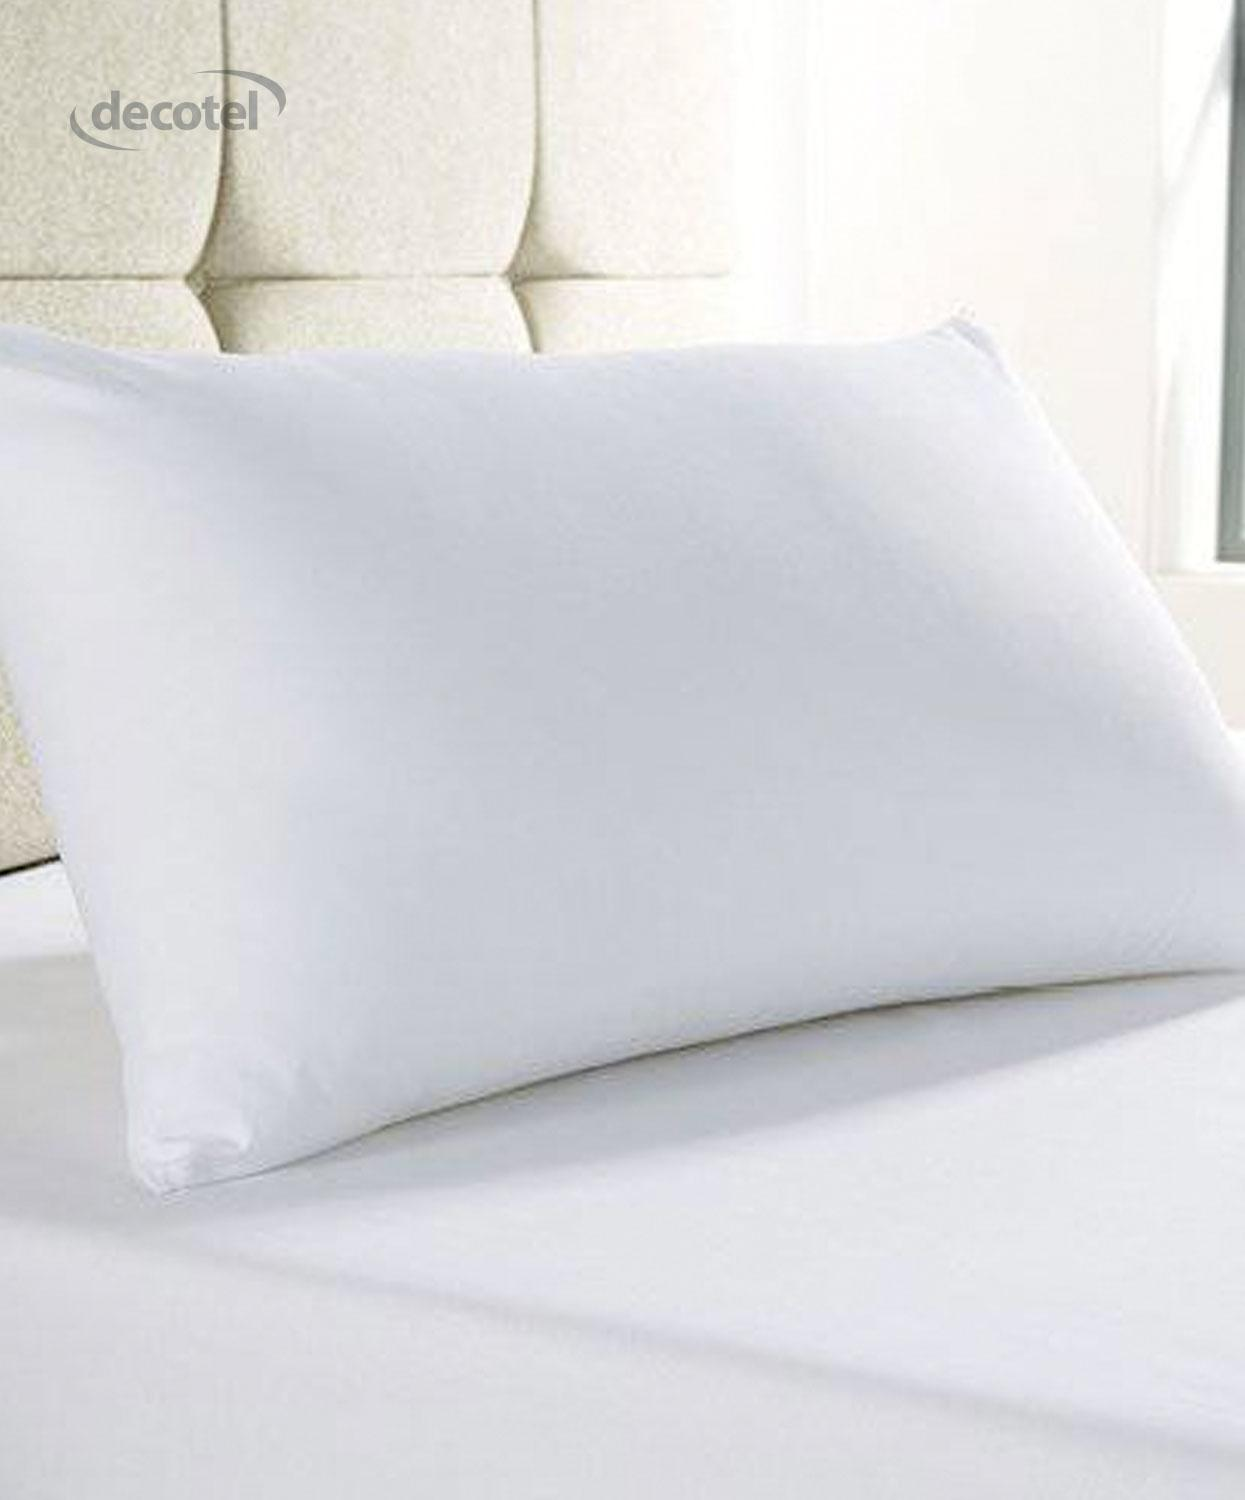 The Hilltop Pillow for hotels and guest houses